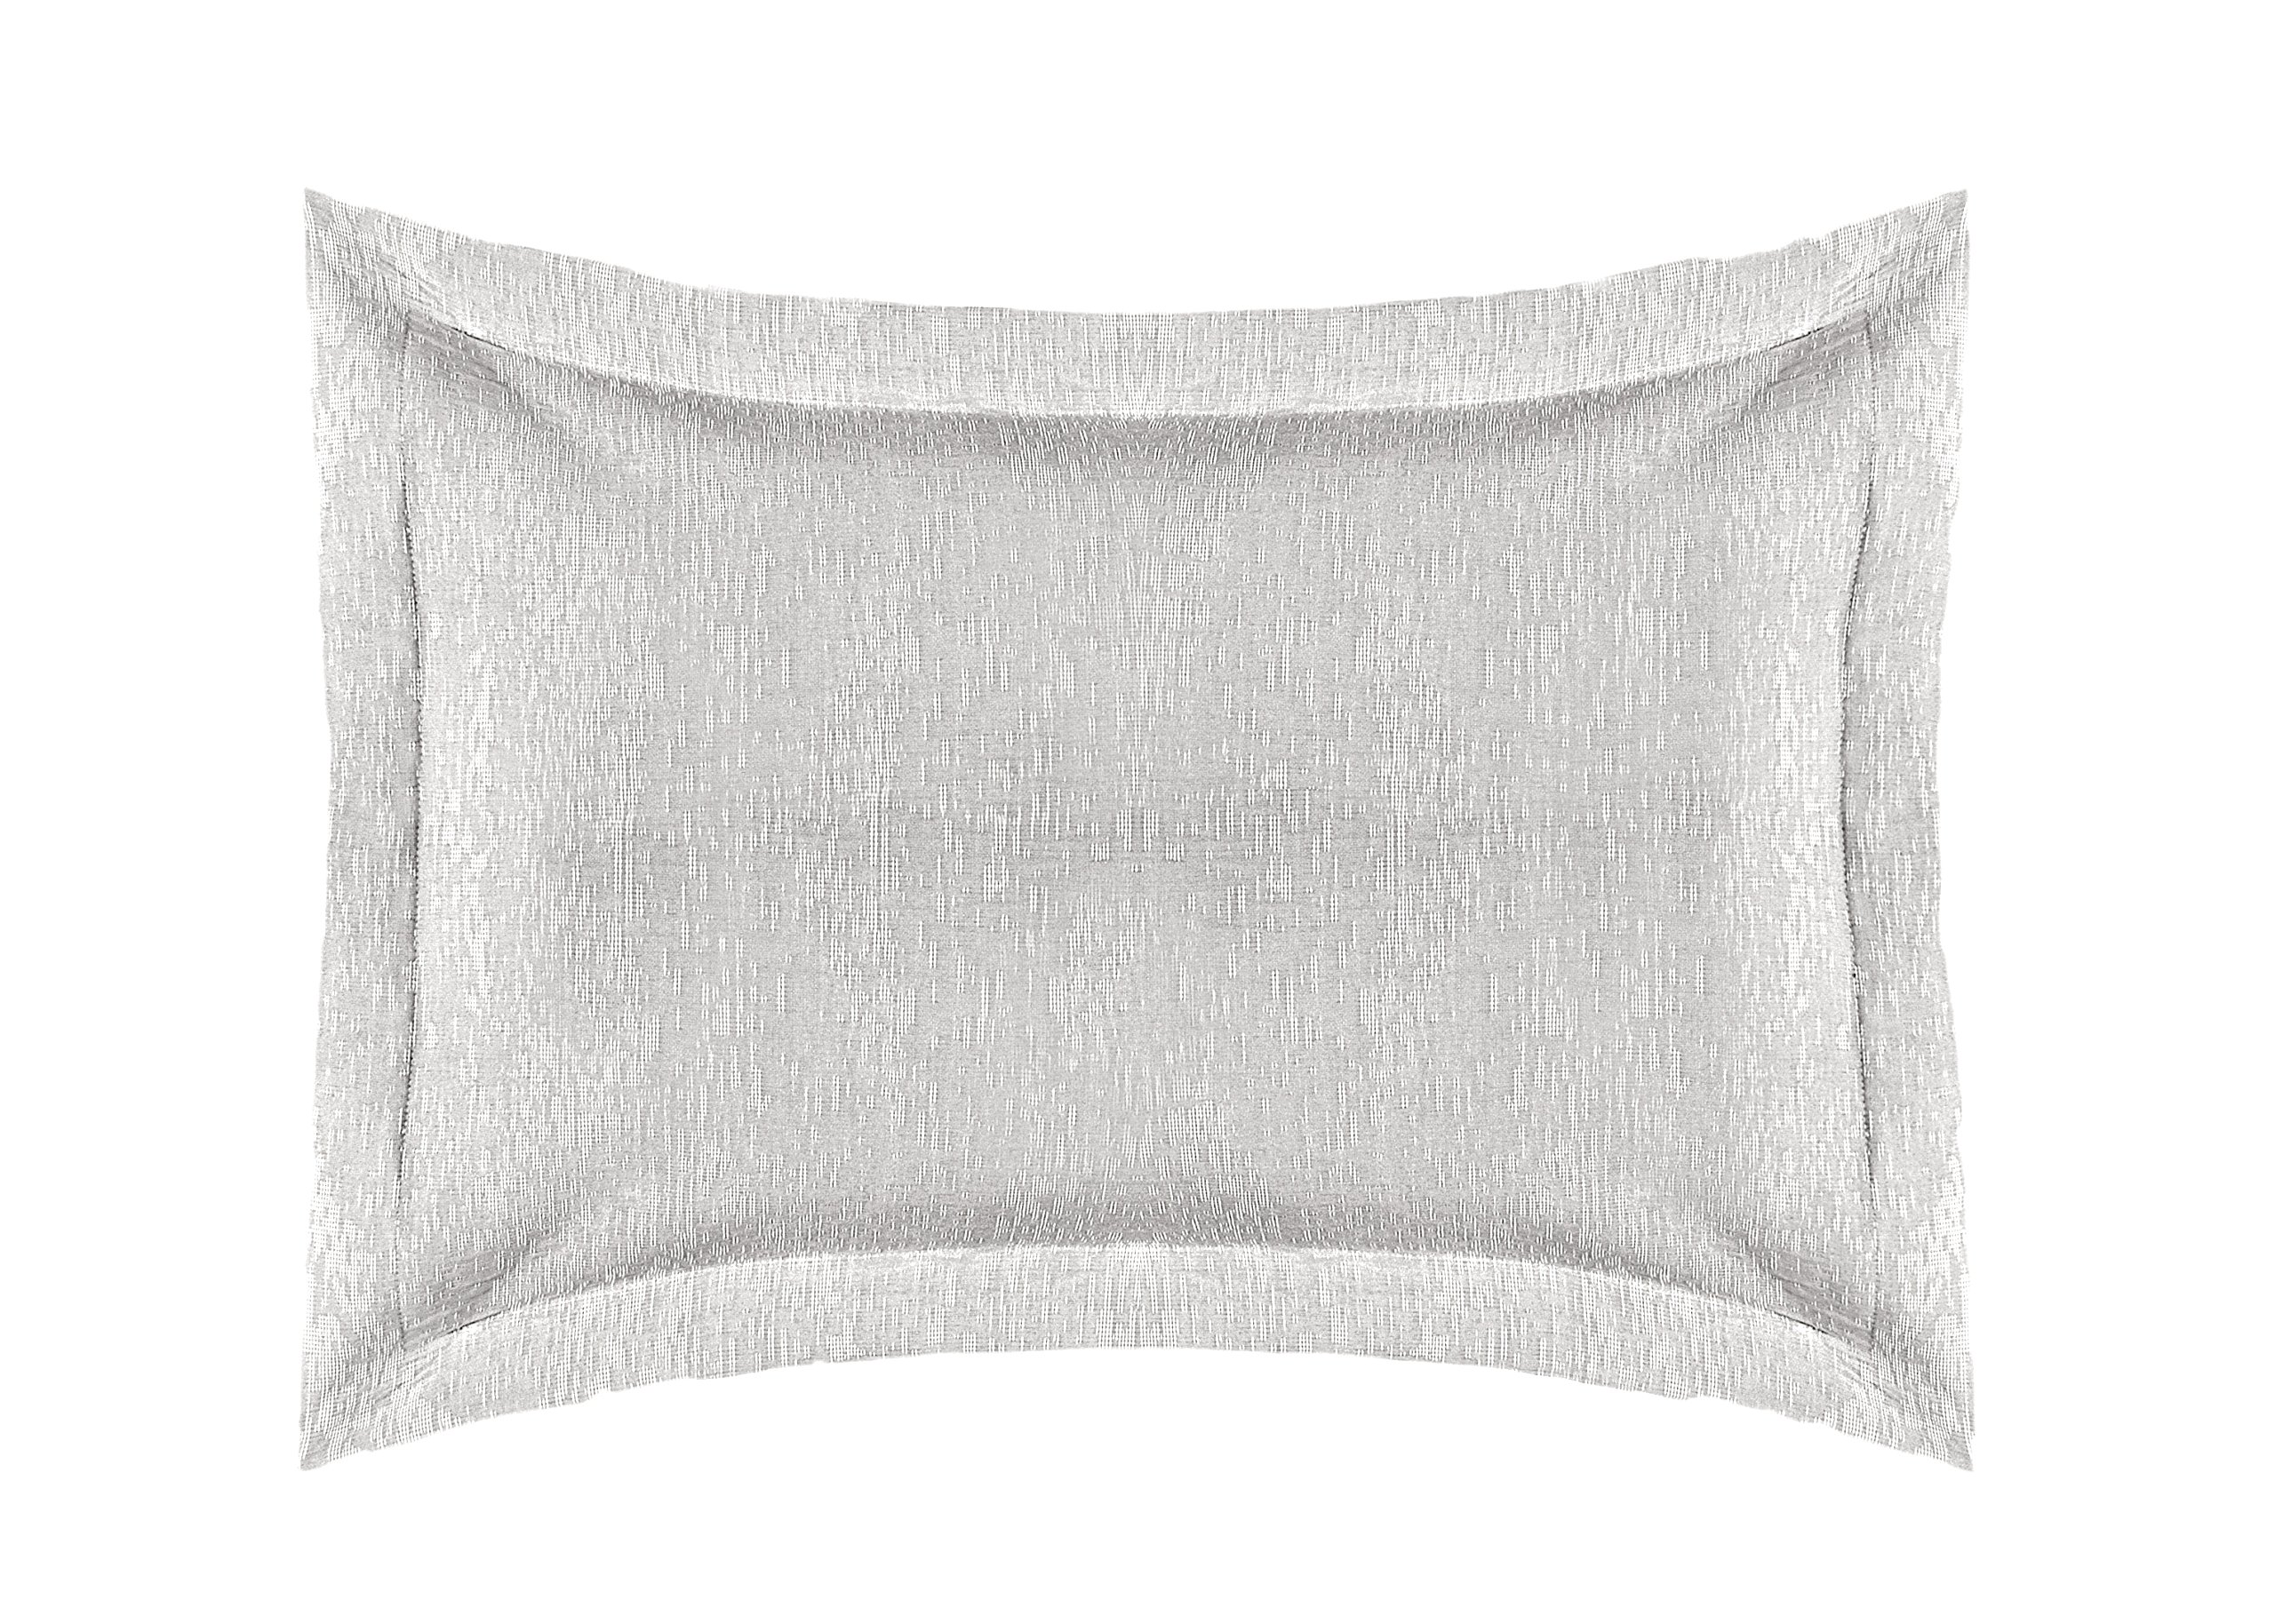 Europa Fine Linens Ikat Matelasse Bedding, King Sham Size 20-Inch by 36-Inch, Dove